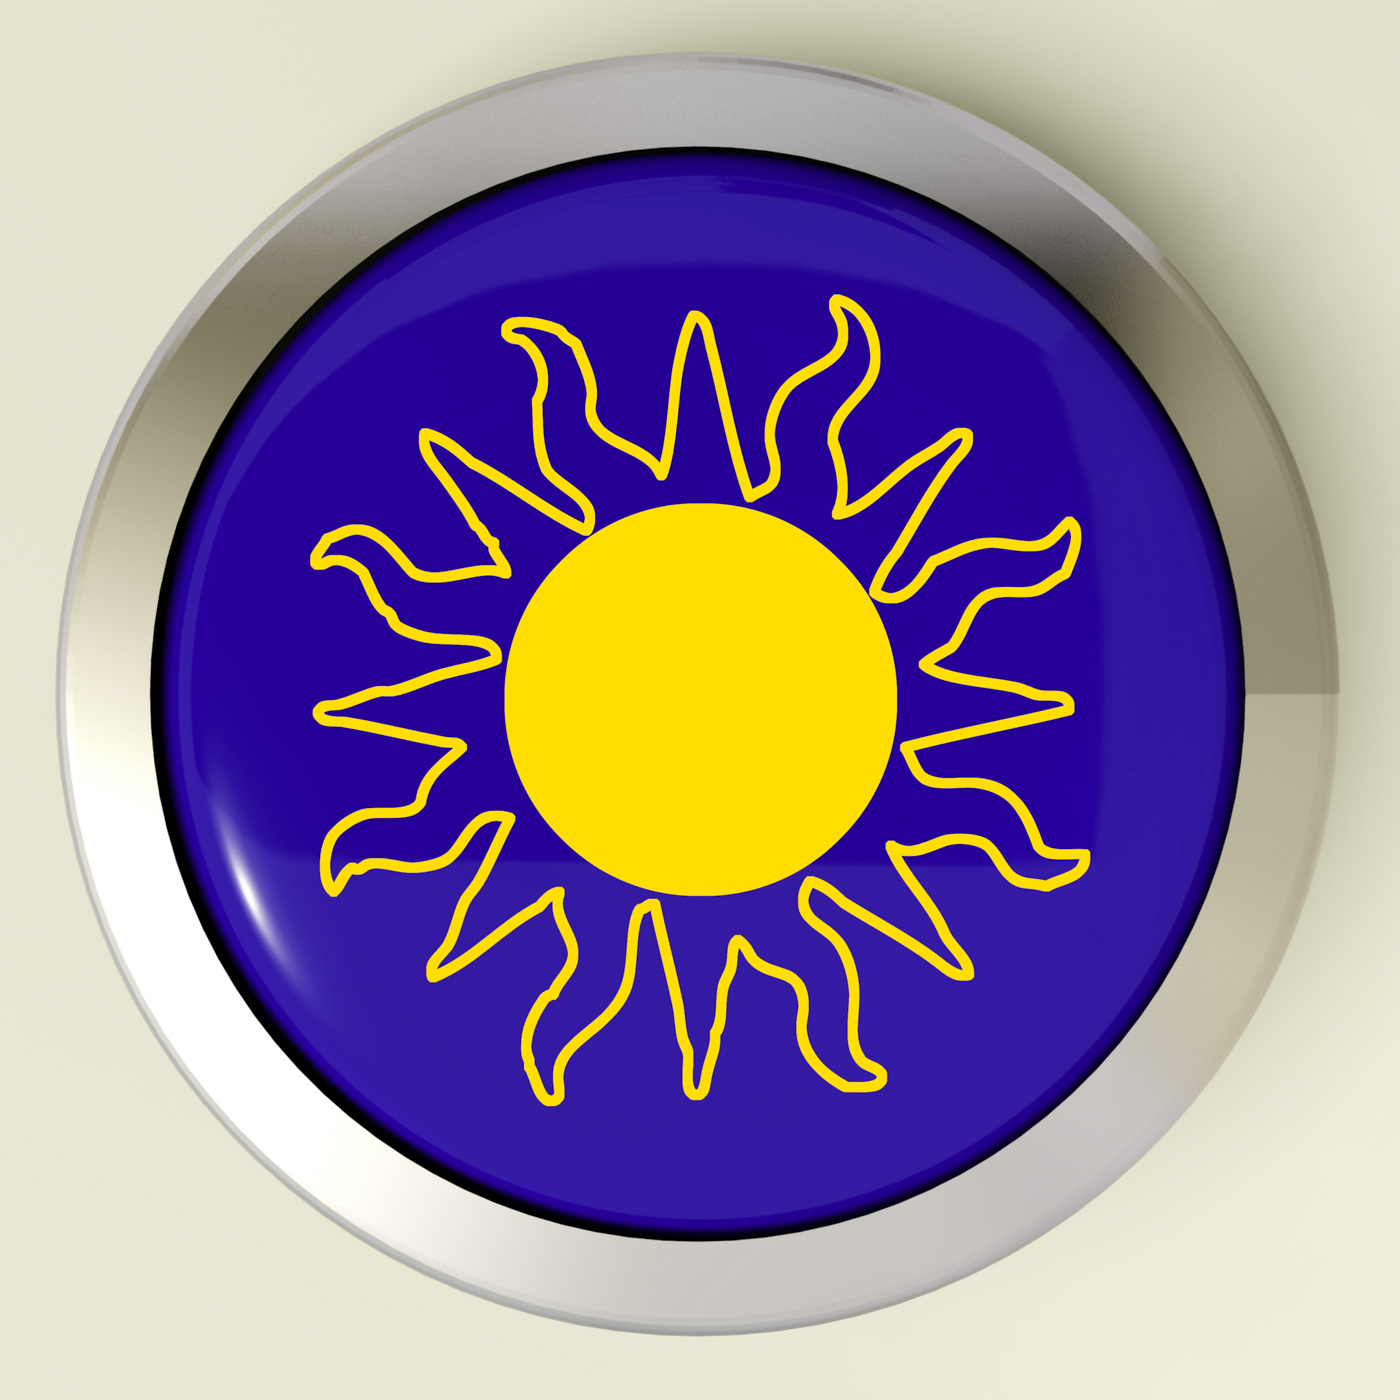 Sunny button means hot weather or sunshine photo